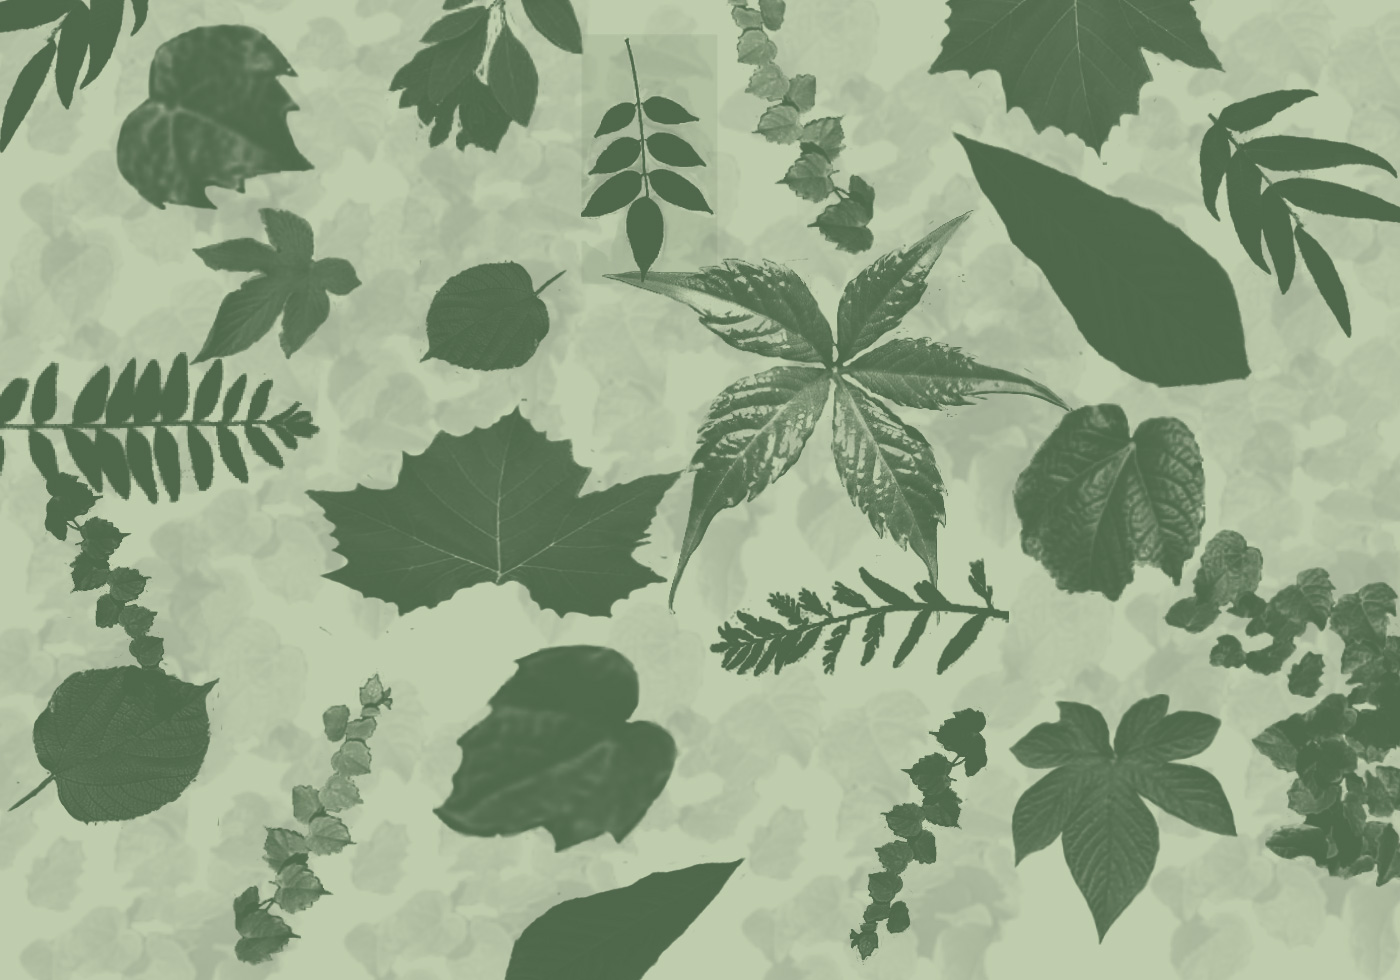 Leaves Photoshop Brushes Free Photoshop Brushes At